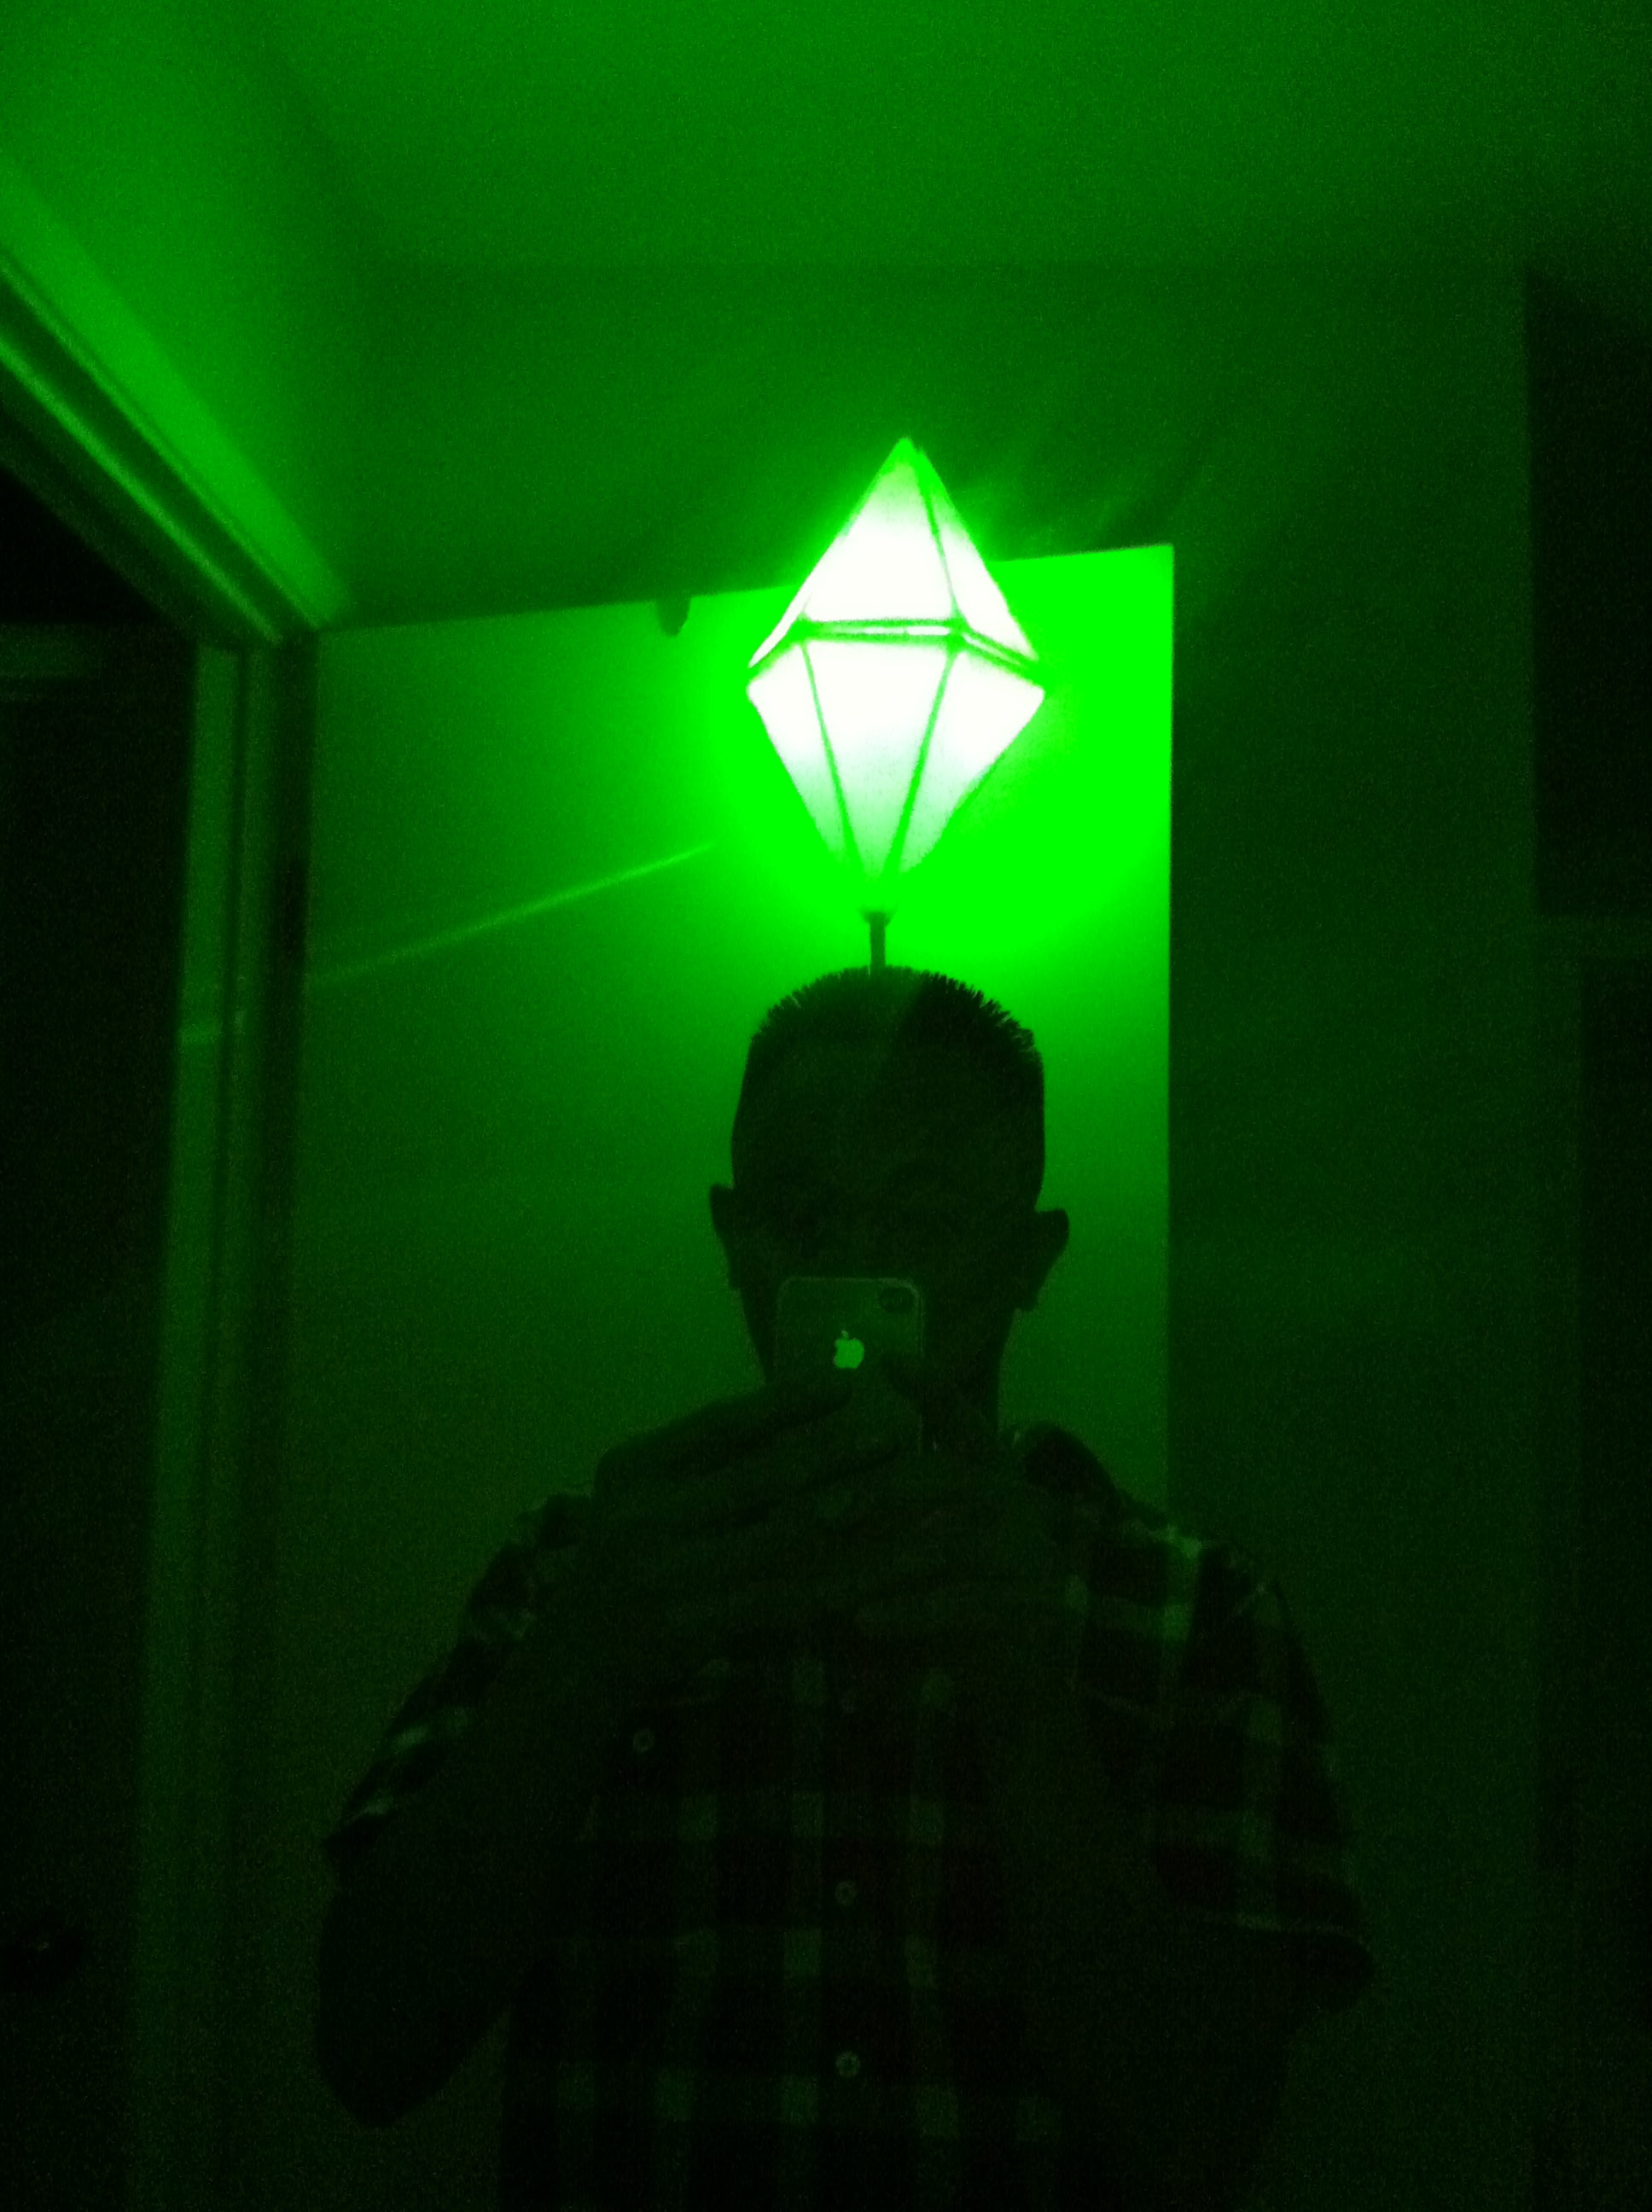 Led Light Up Sims Plumbbob Costume That Green Pylon Above Their Battery Fuse Box Melting Head 6 Steps